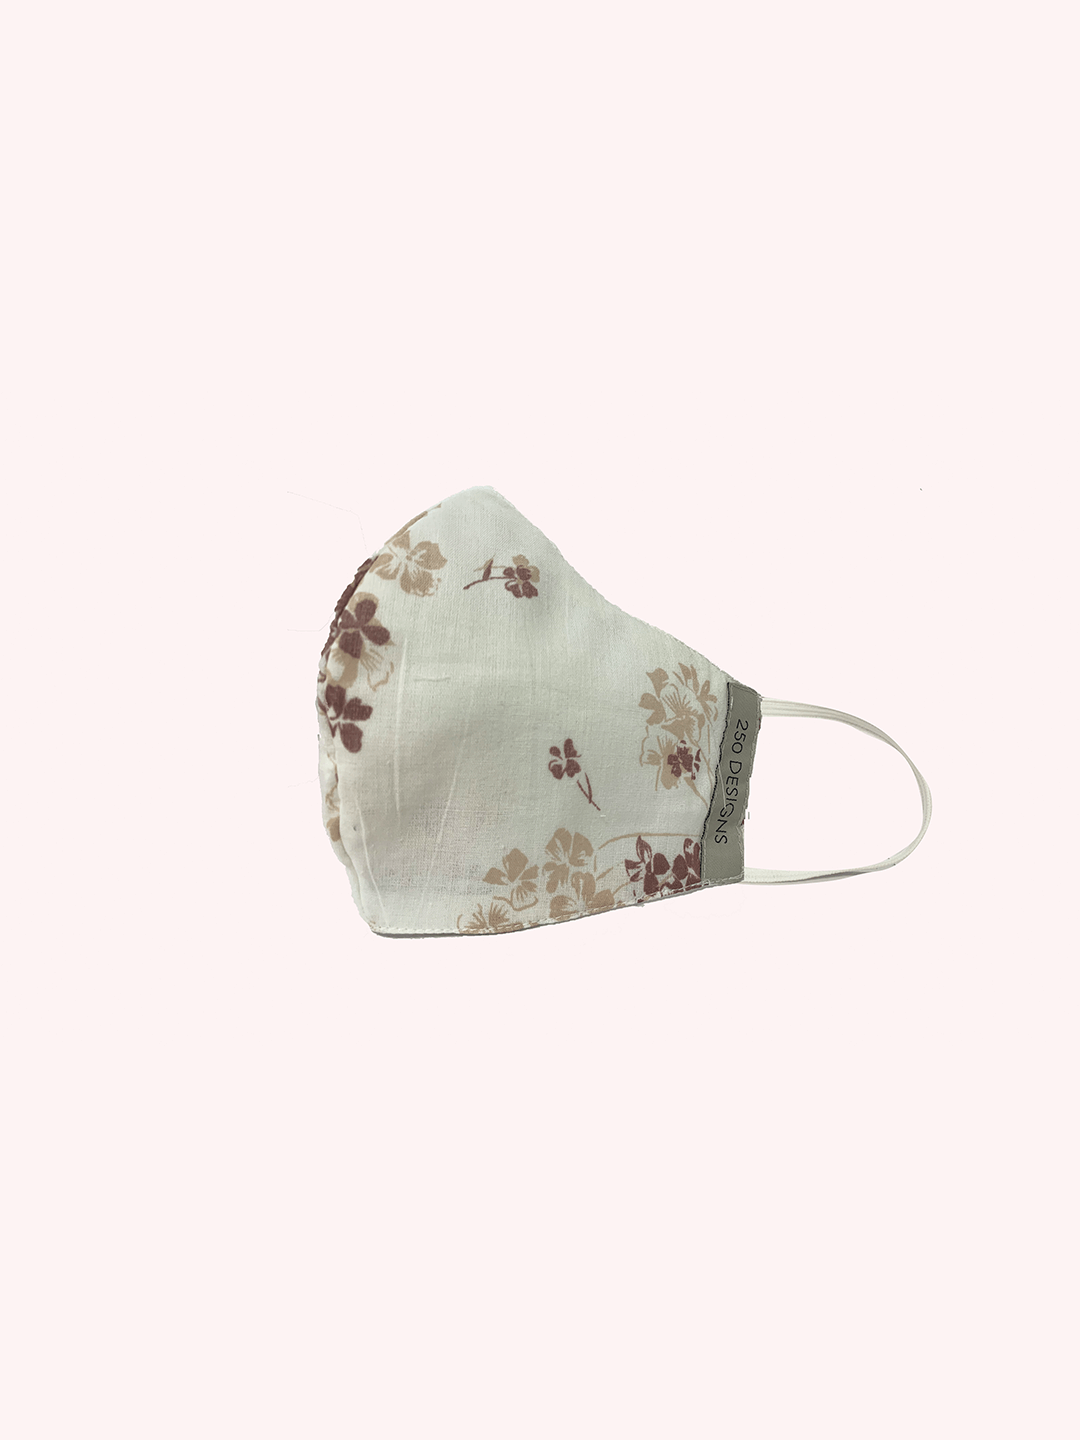 cotton mask for women by 250 designs